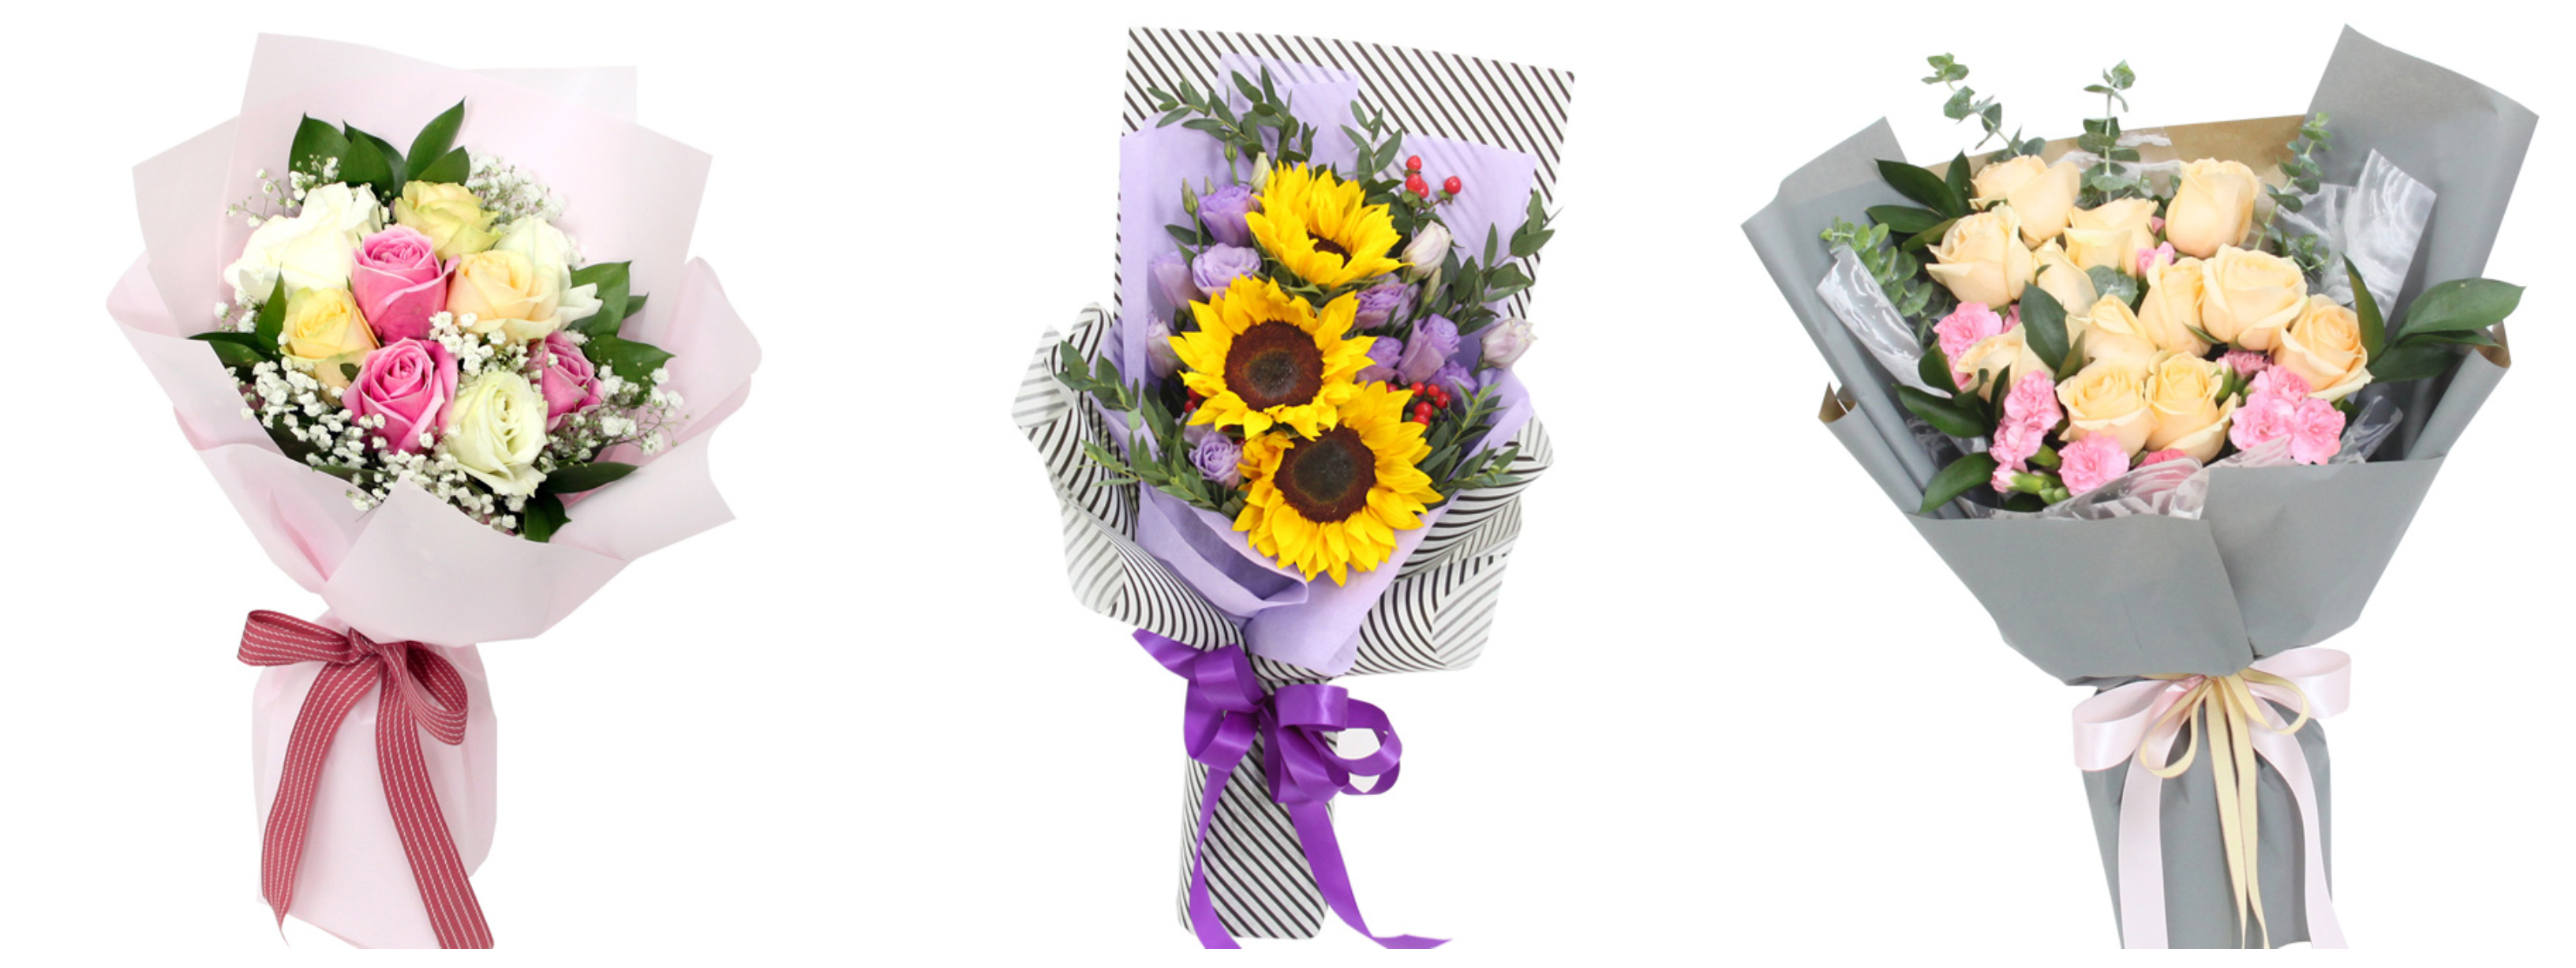 orchard florist - florist in orchard